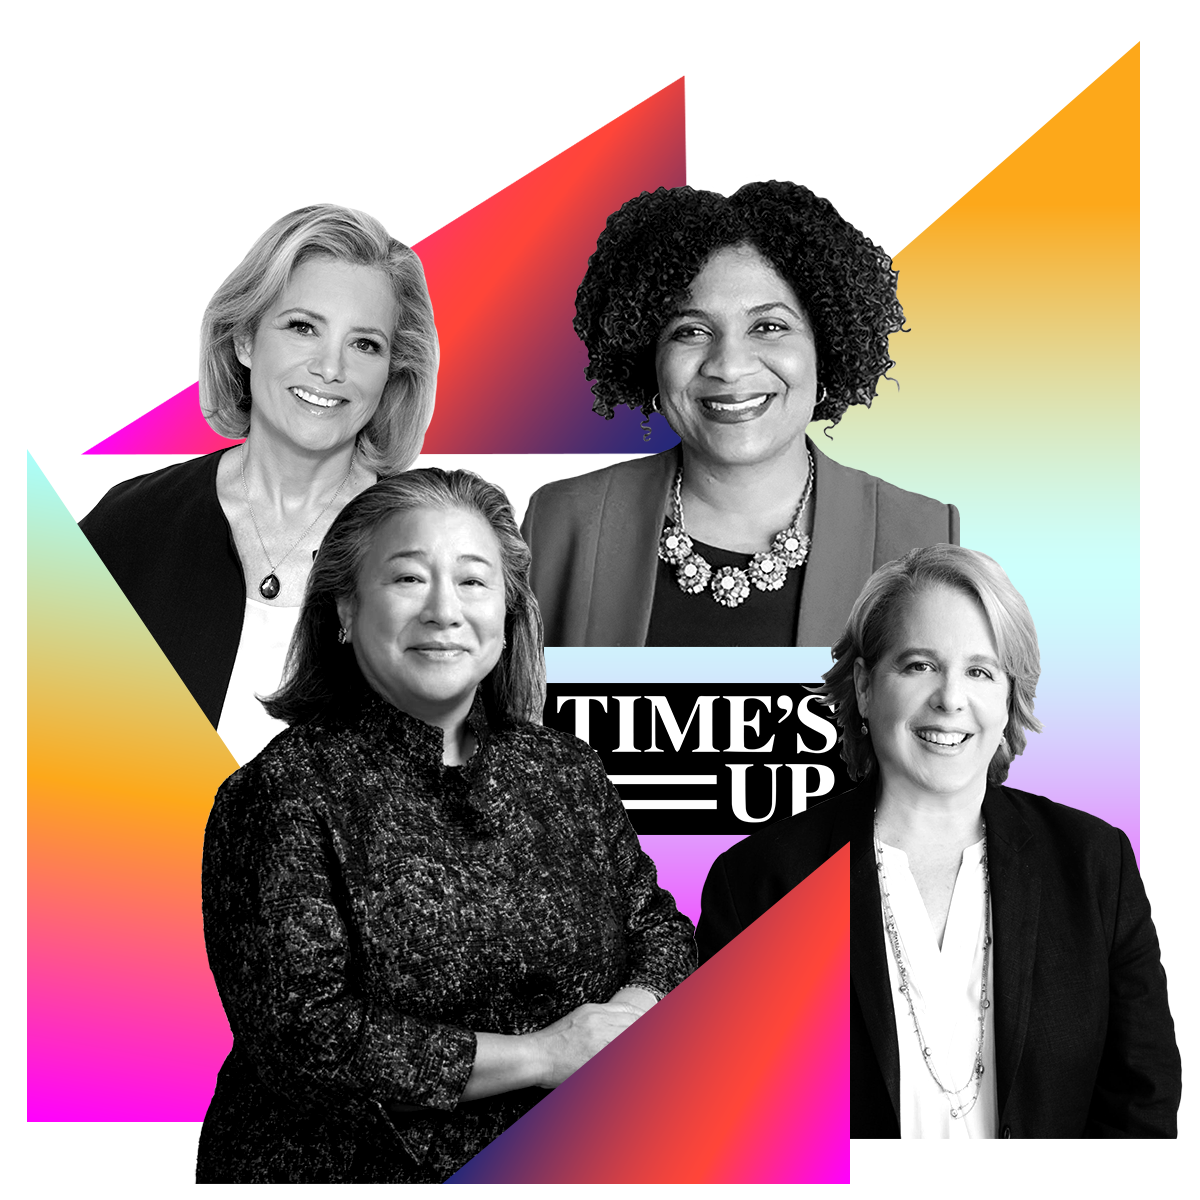 Photo illustration of Hilary Rosen, Fatima Goss Graves, Roberta Kaplan, and Christina M. Tchen (Time's Up Legal Defense Fund) in black and white surrounded by colored gradients